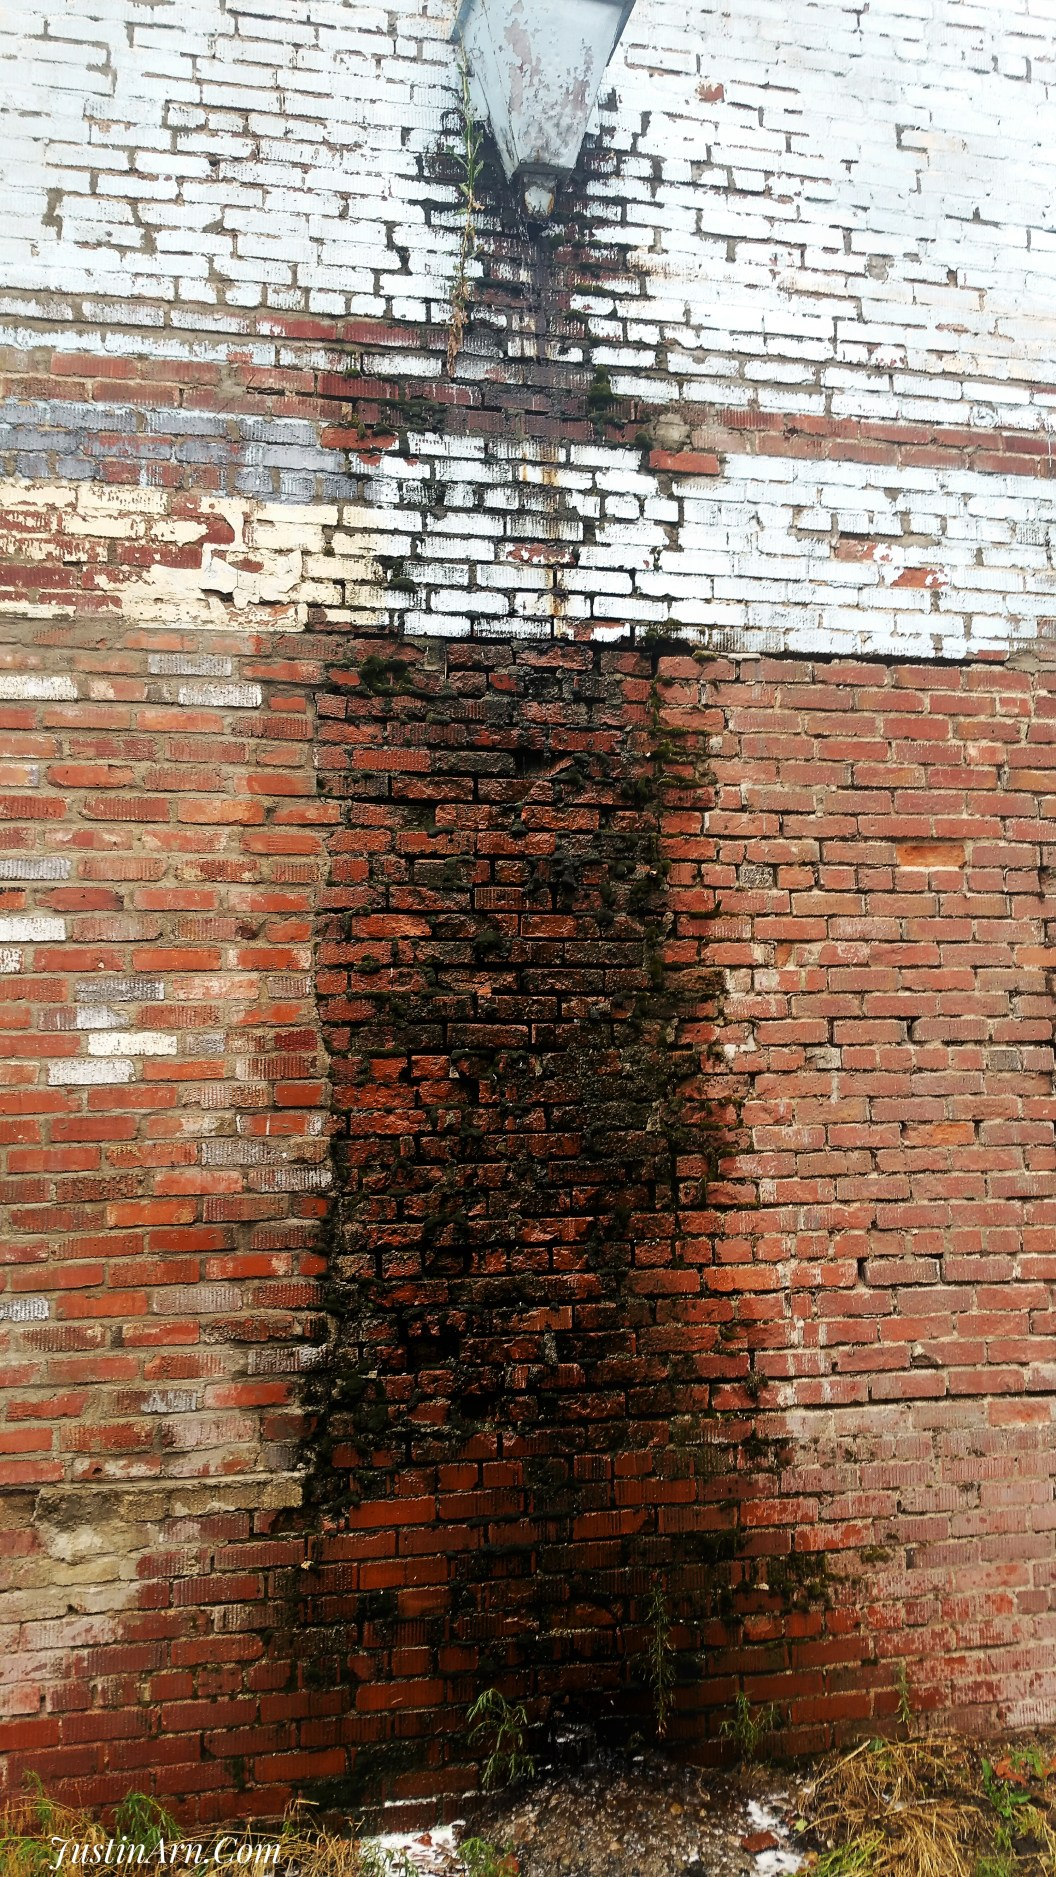 Brick work deteriorating from time and weather.